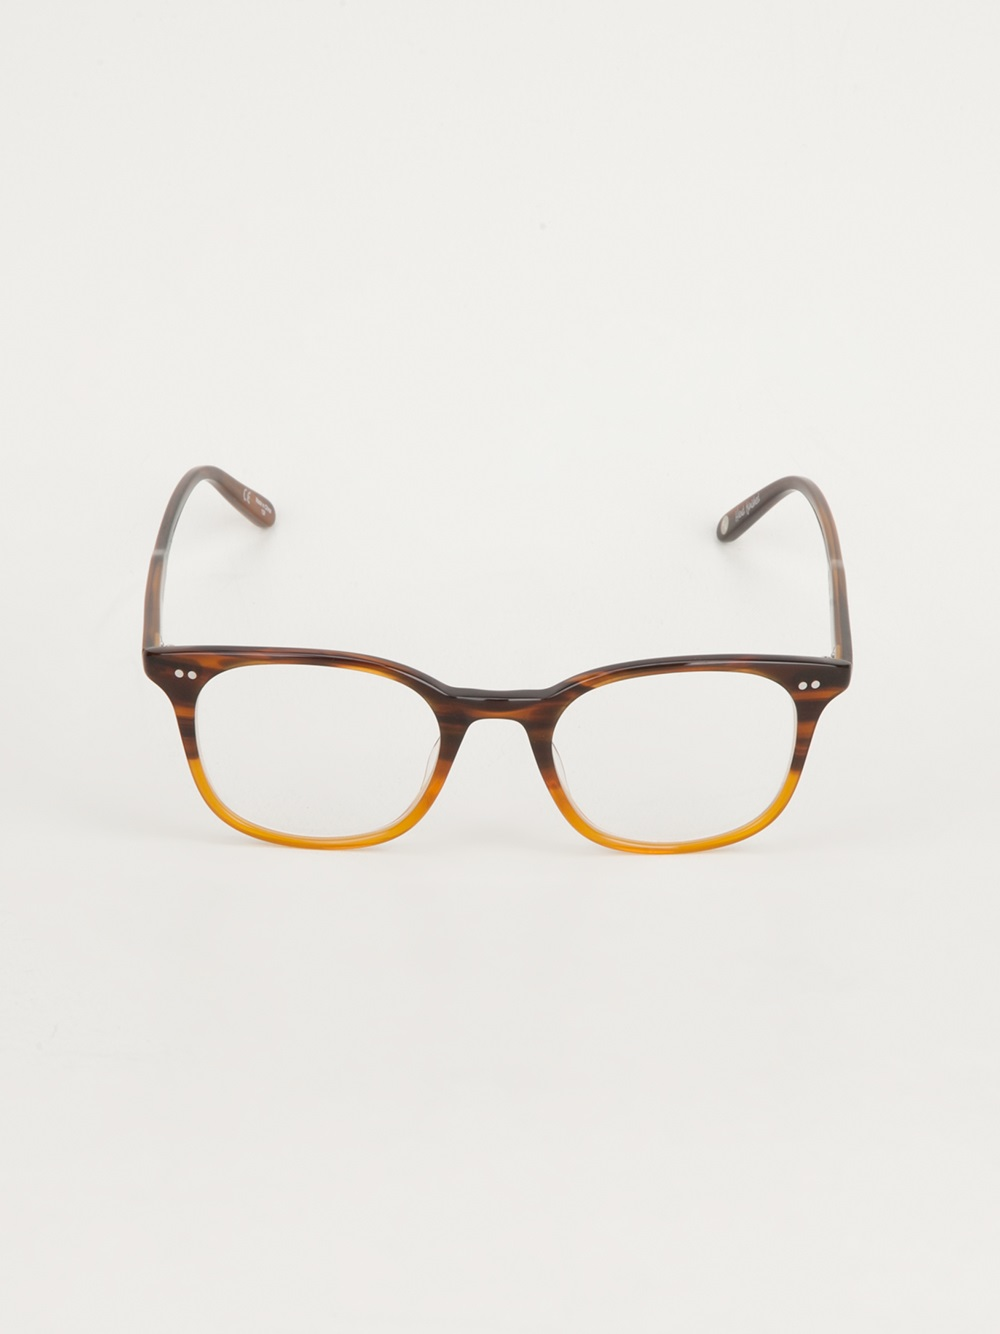 Ghost Glasses Frames Boots